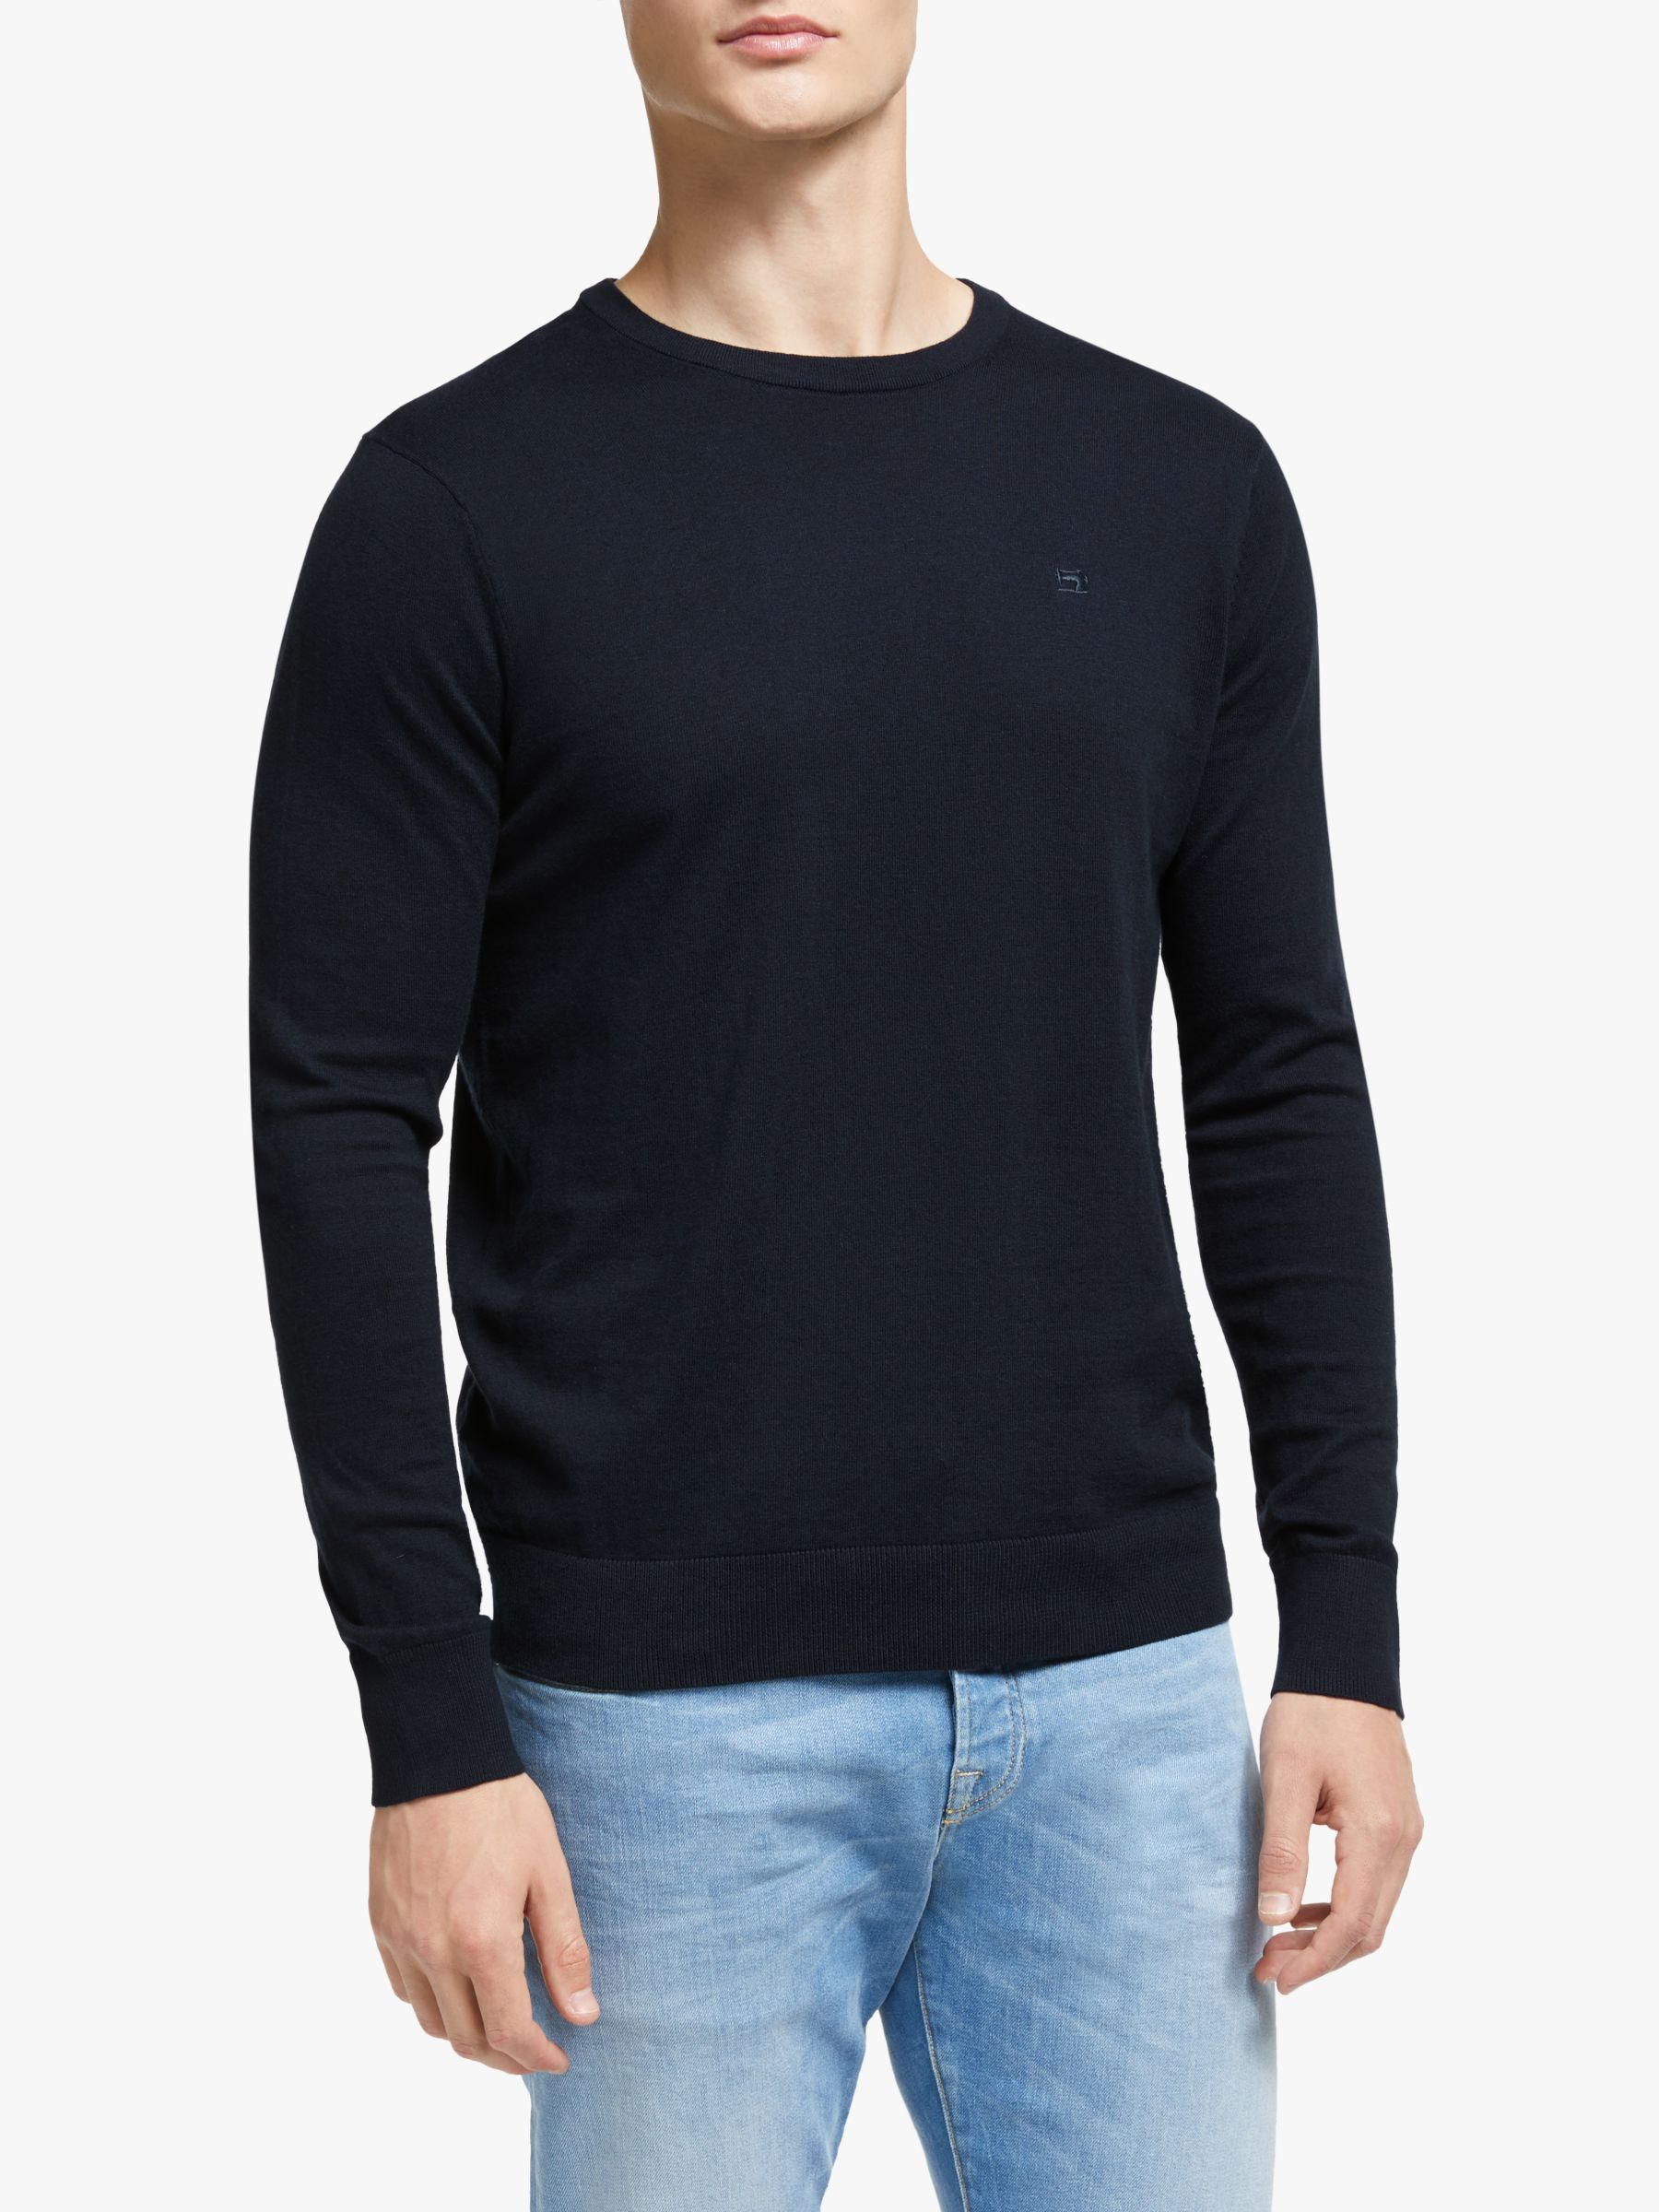 Scotch & Soda Scotch & Soda Classic Crew Neck Jumper